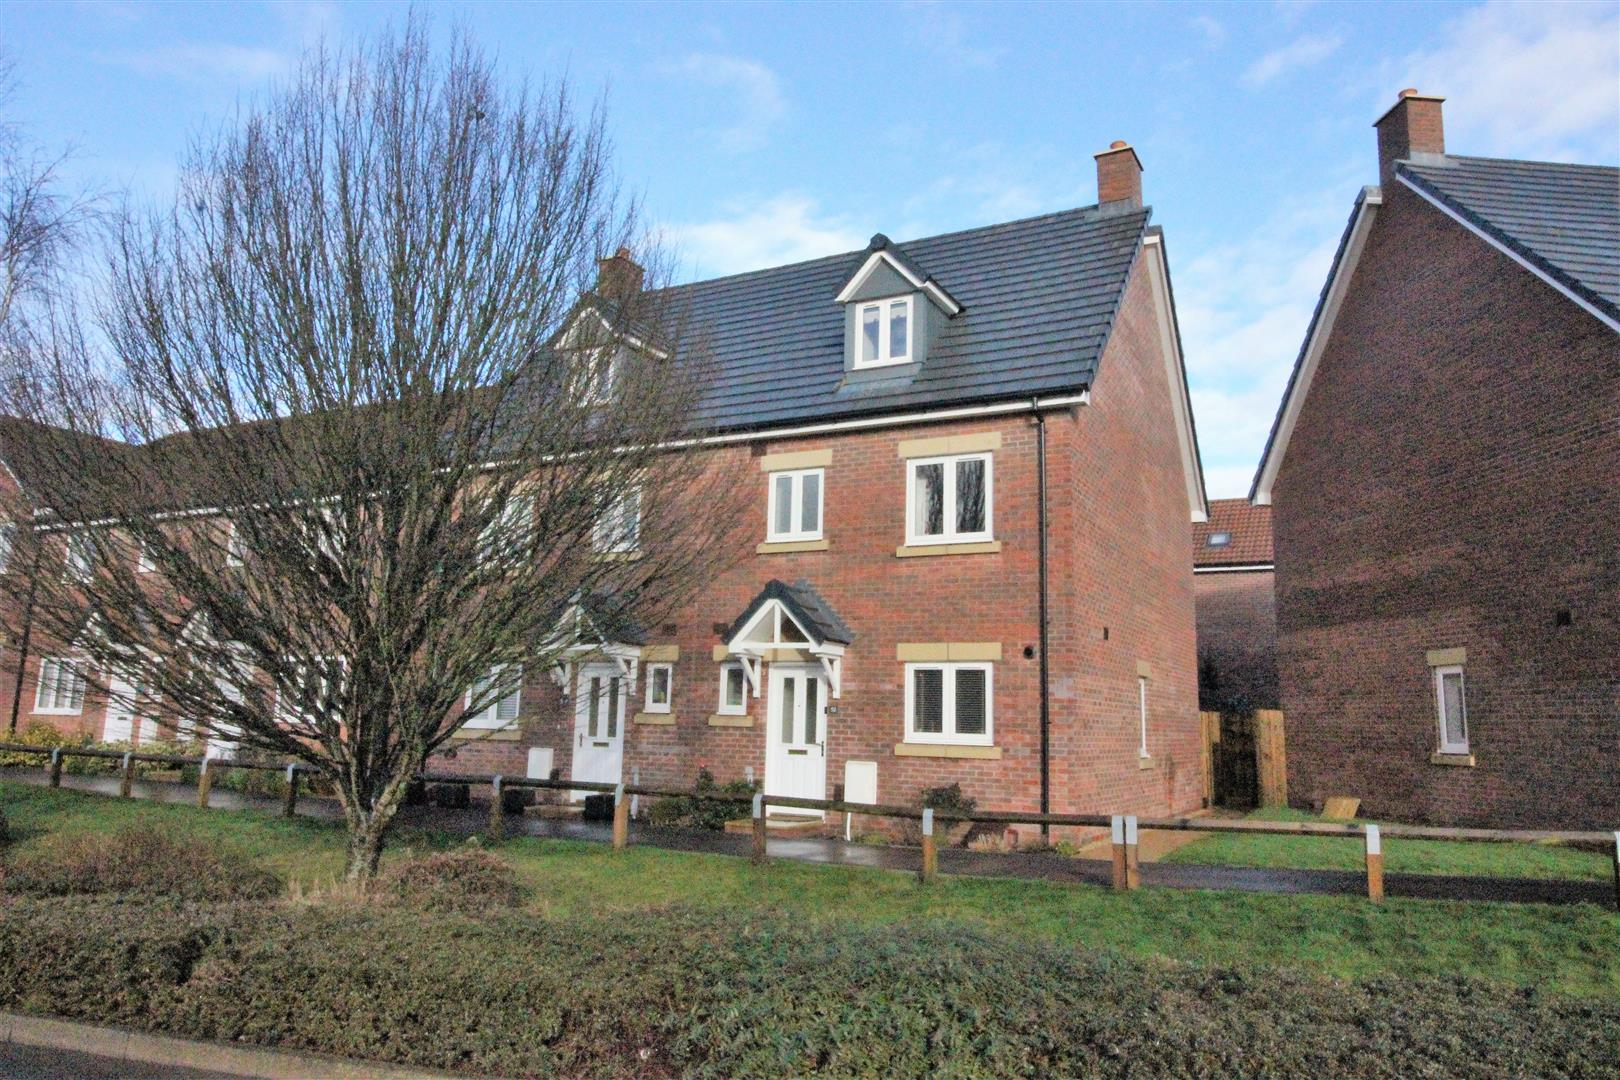 4 Bedrooms Semi Detached House for sale in Malone Avenue, Swindon